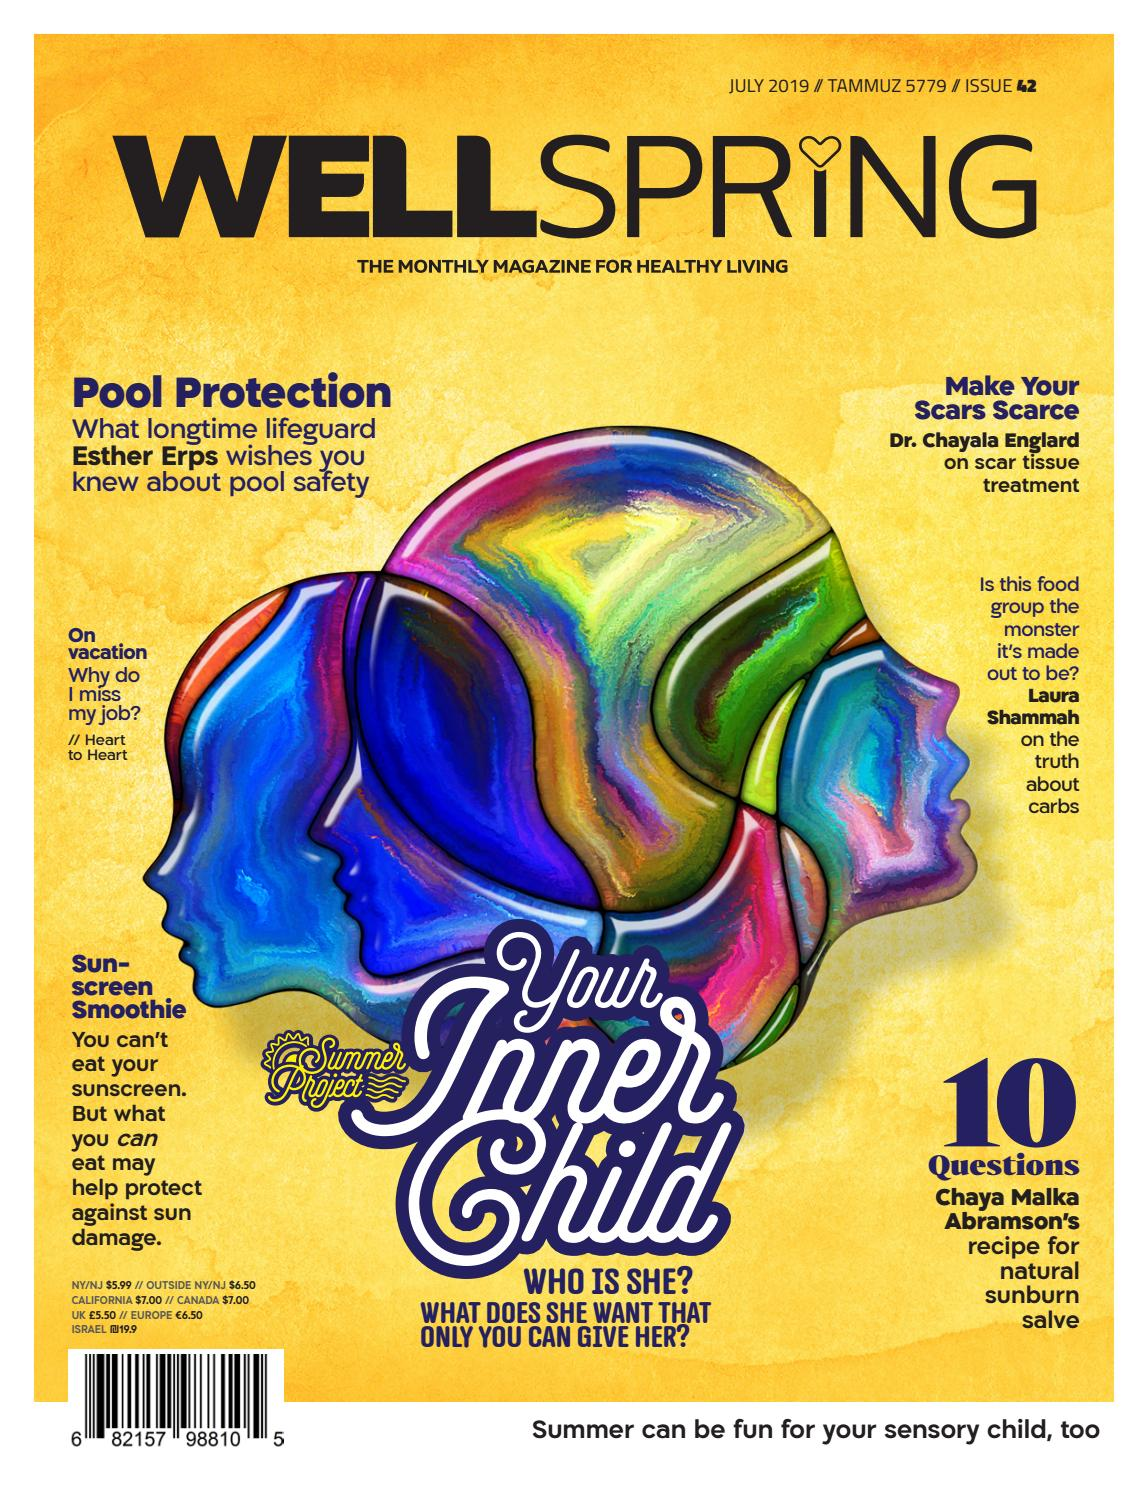 Wellspring Issue #42 by The Wellspring - issuu